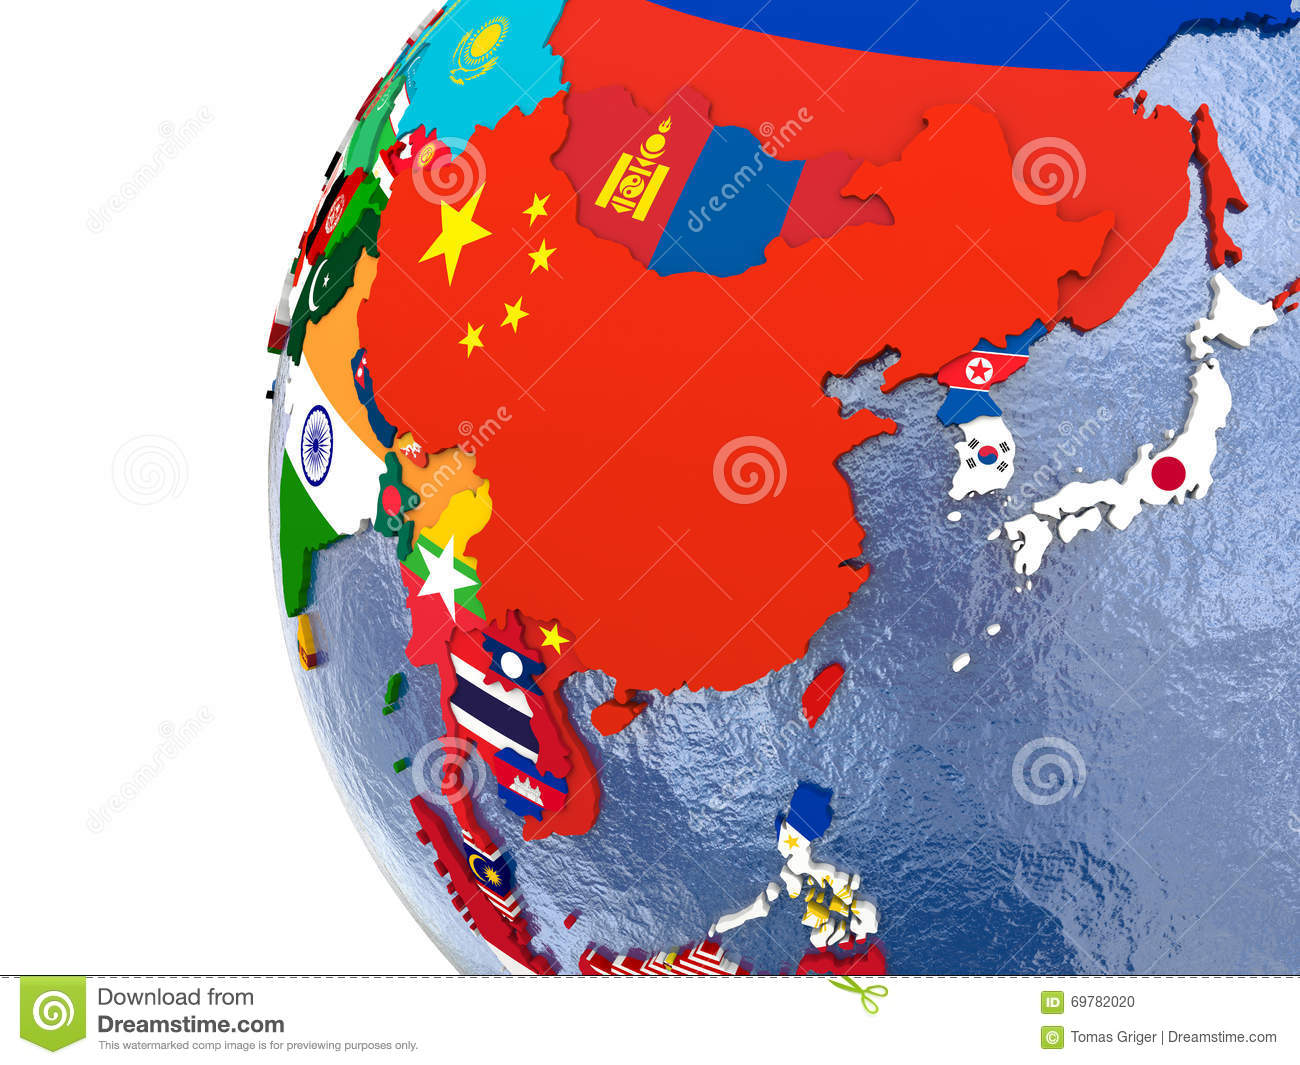 Political east Asia map stock illustration. Illustration of asian ...